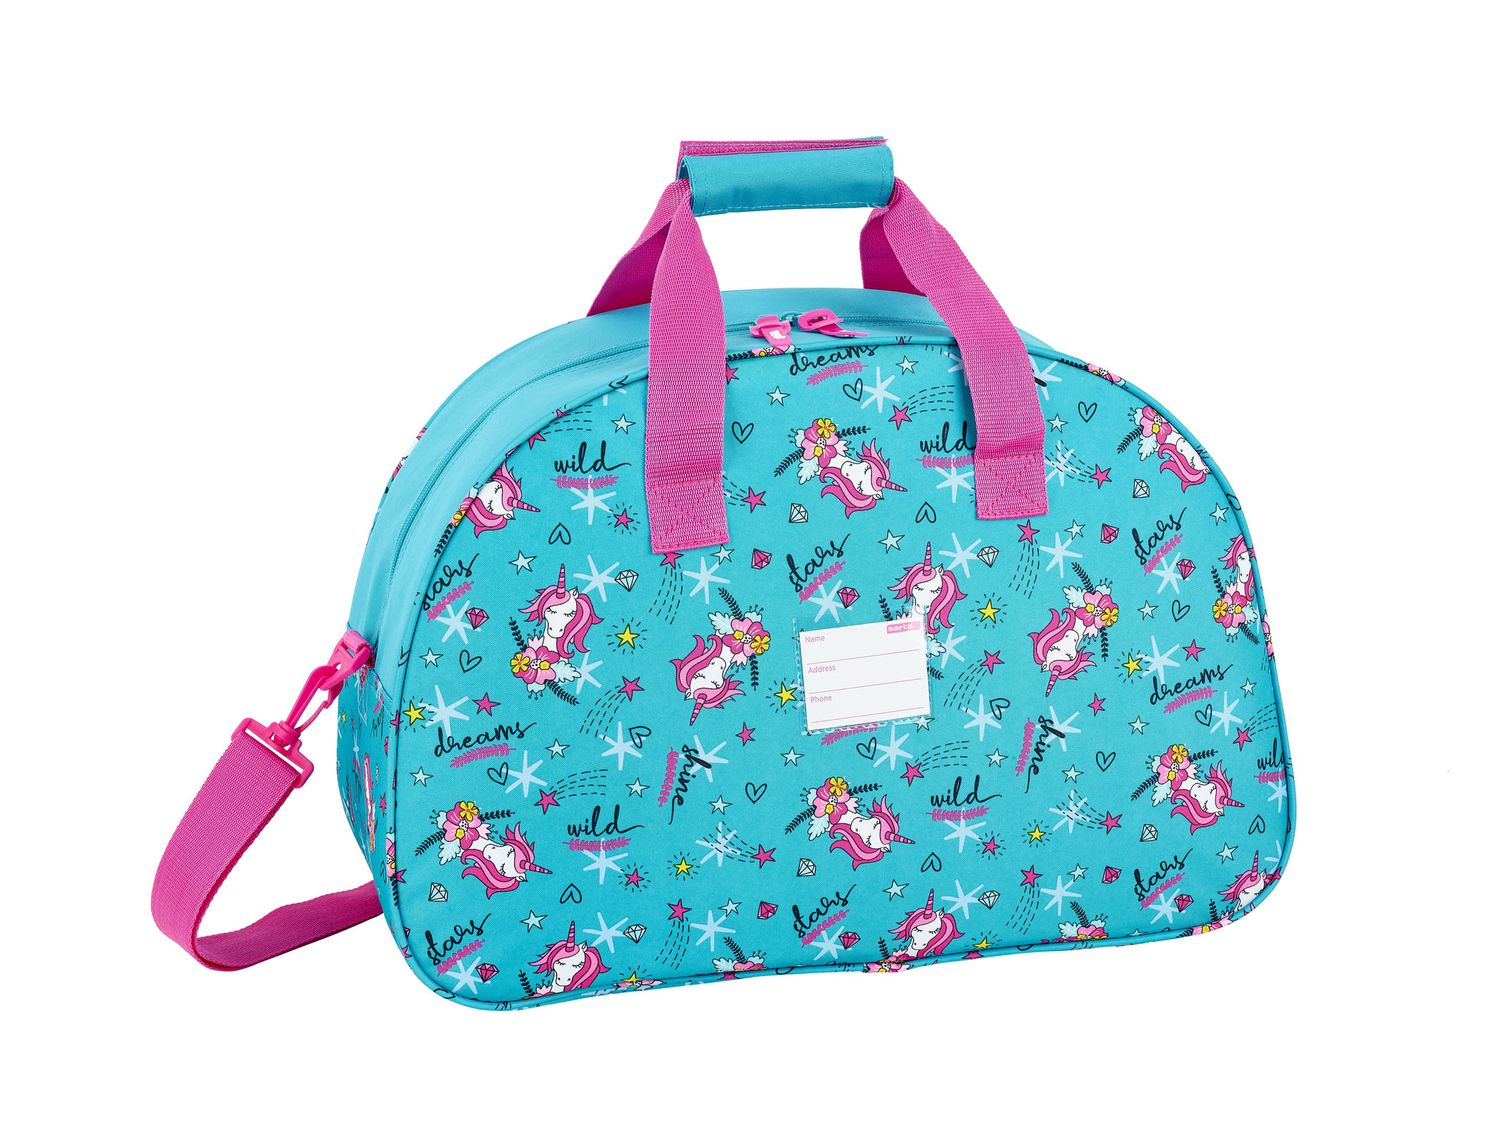 Travel Sports Bag 48 cm Glowlab DREAMS Unicorn – image 2